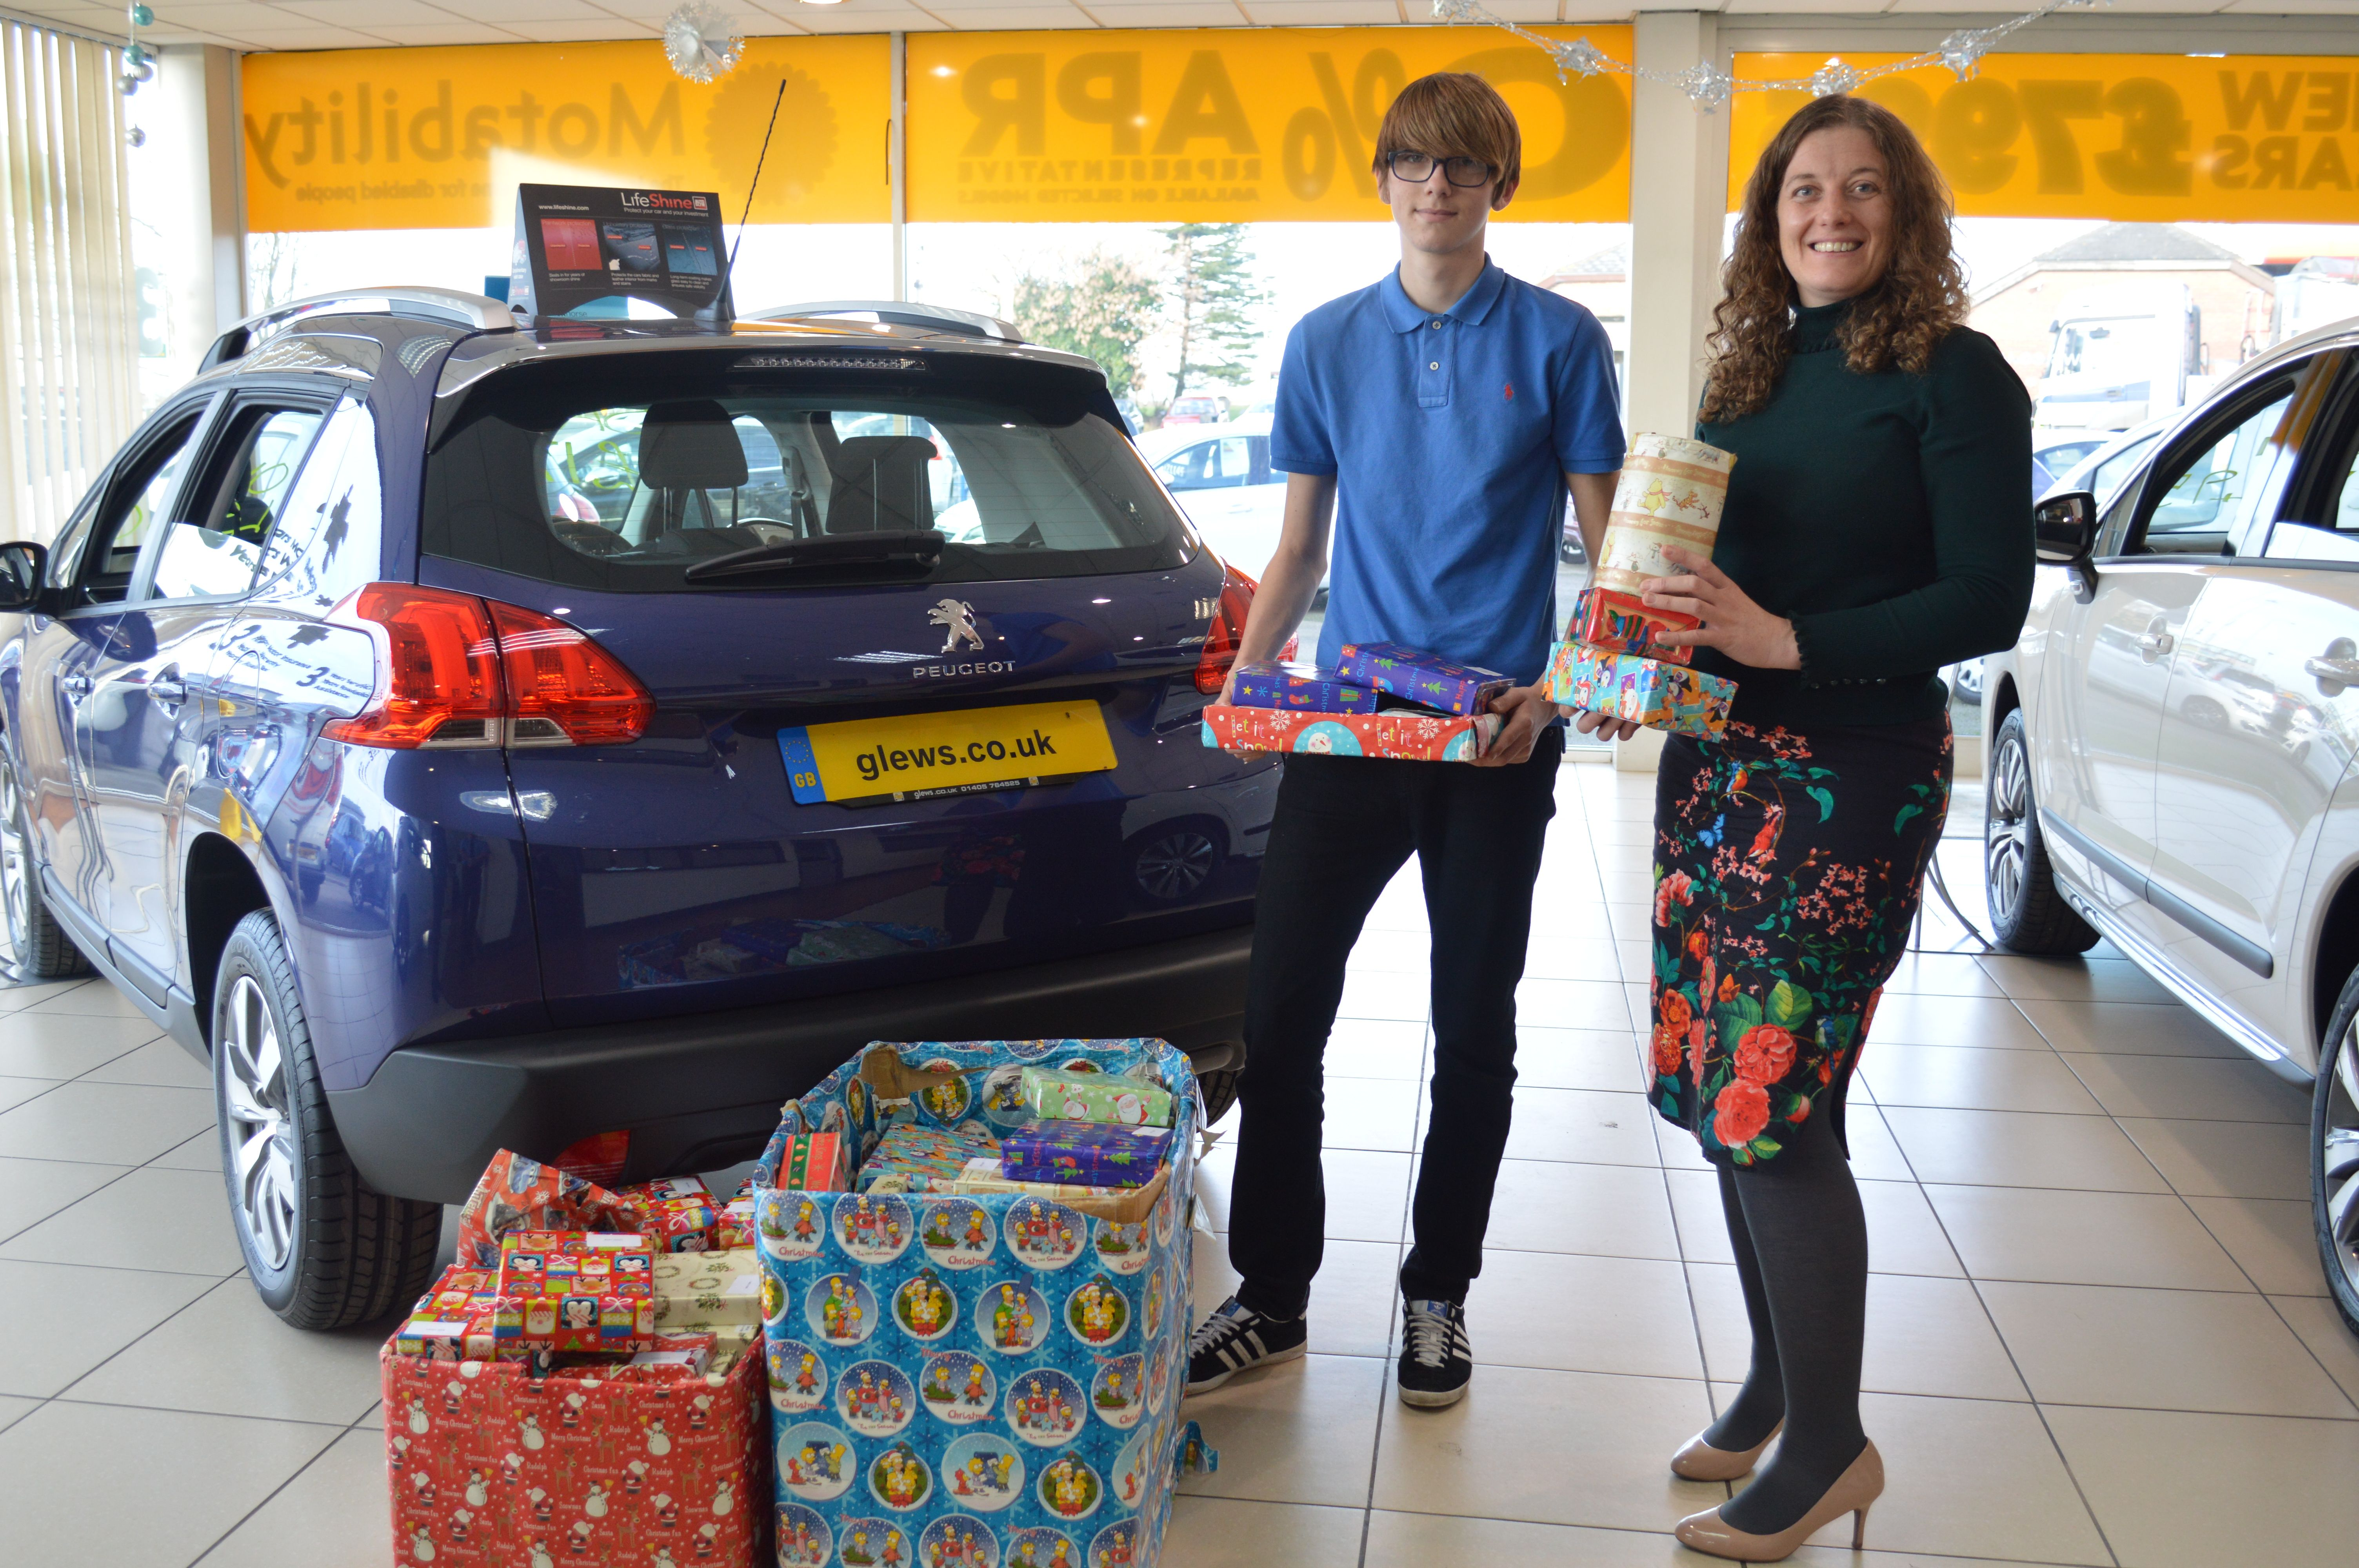 Glews Garage donates presents to village in The Gambia